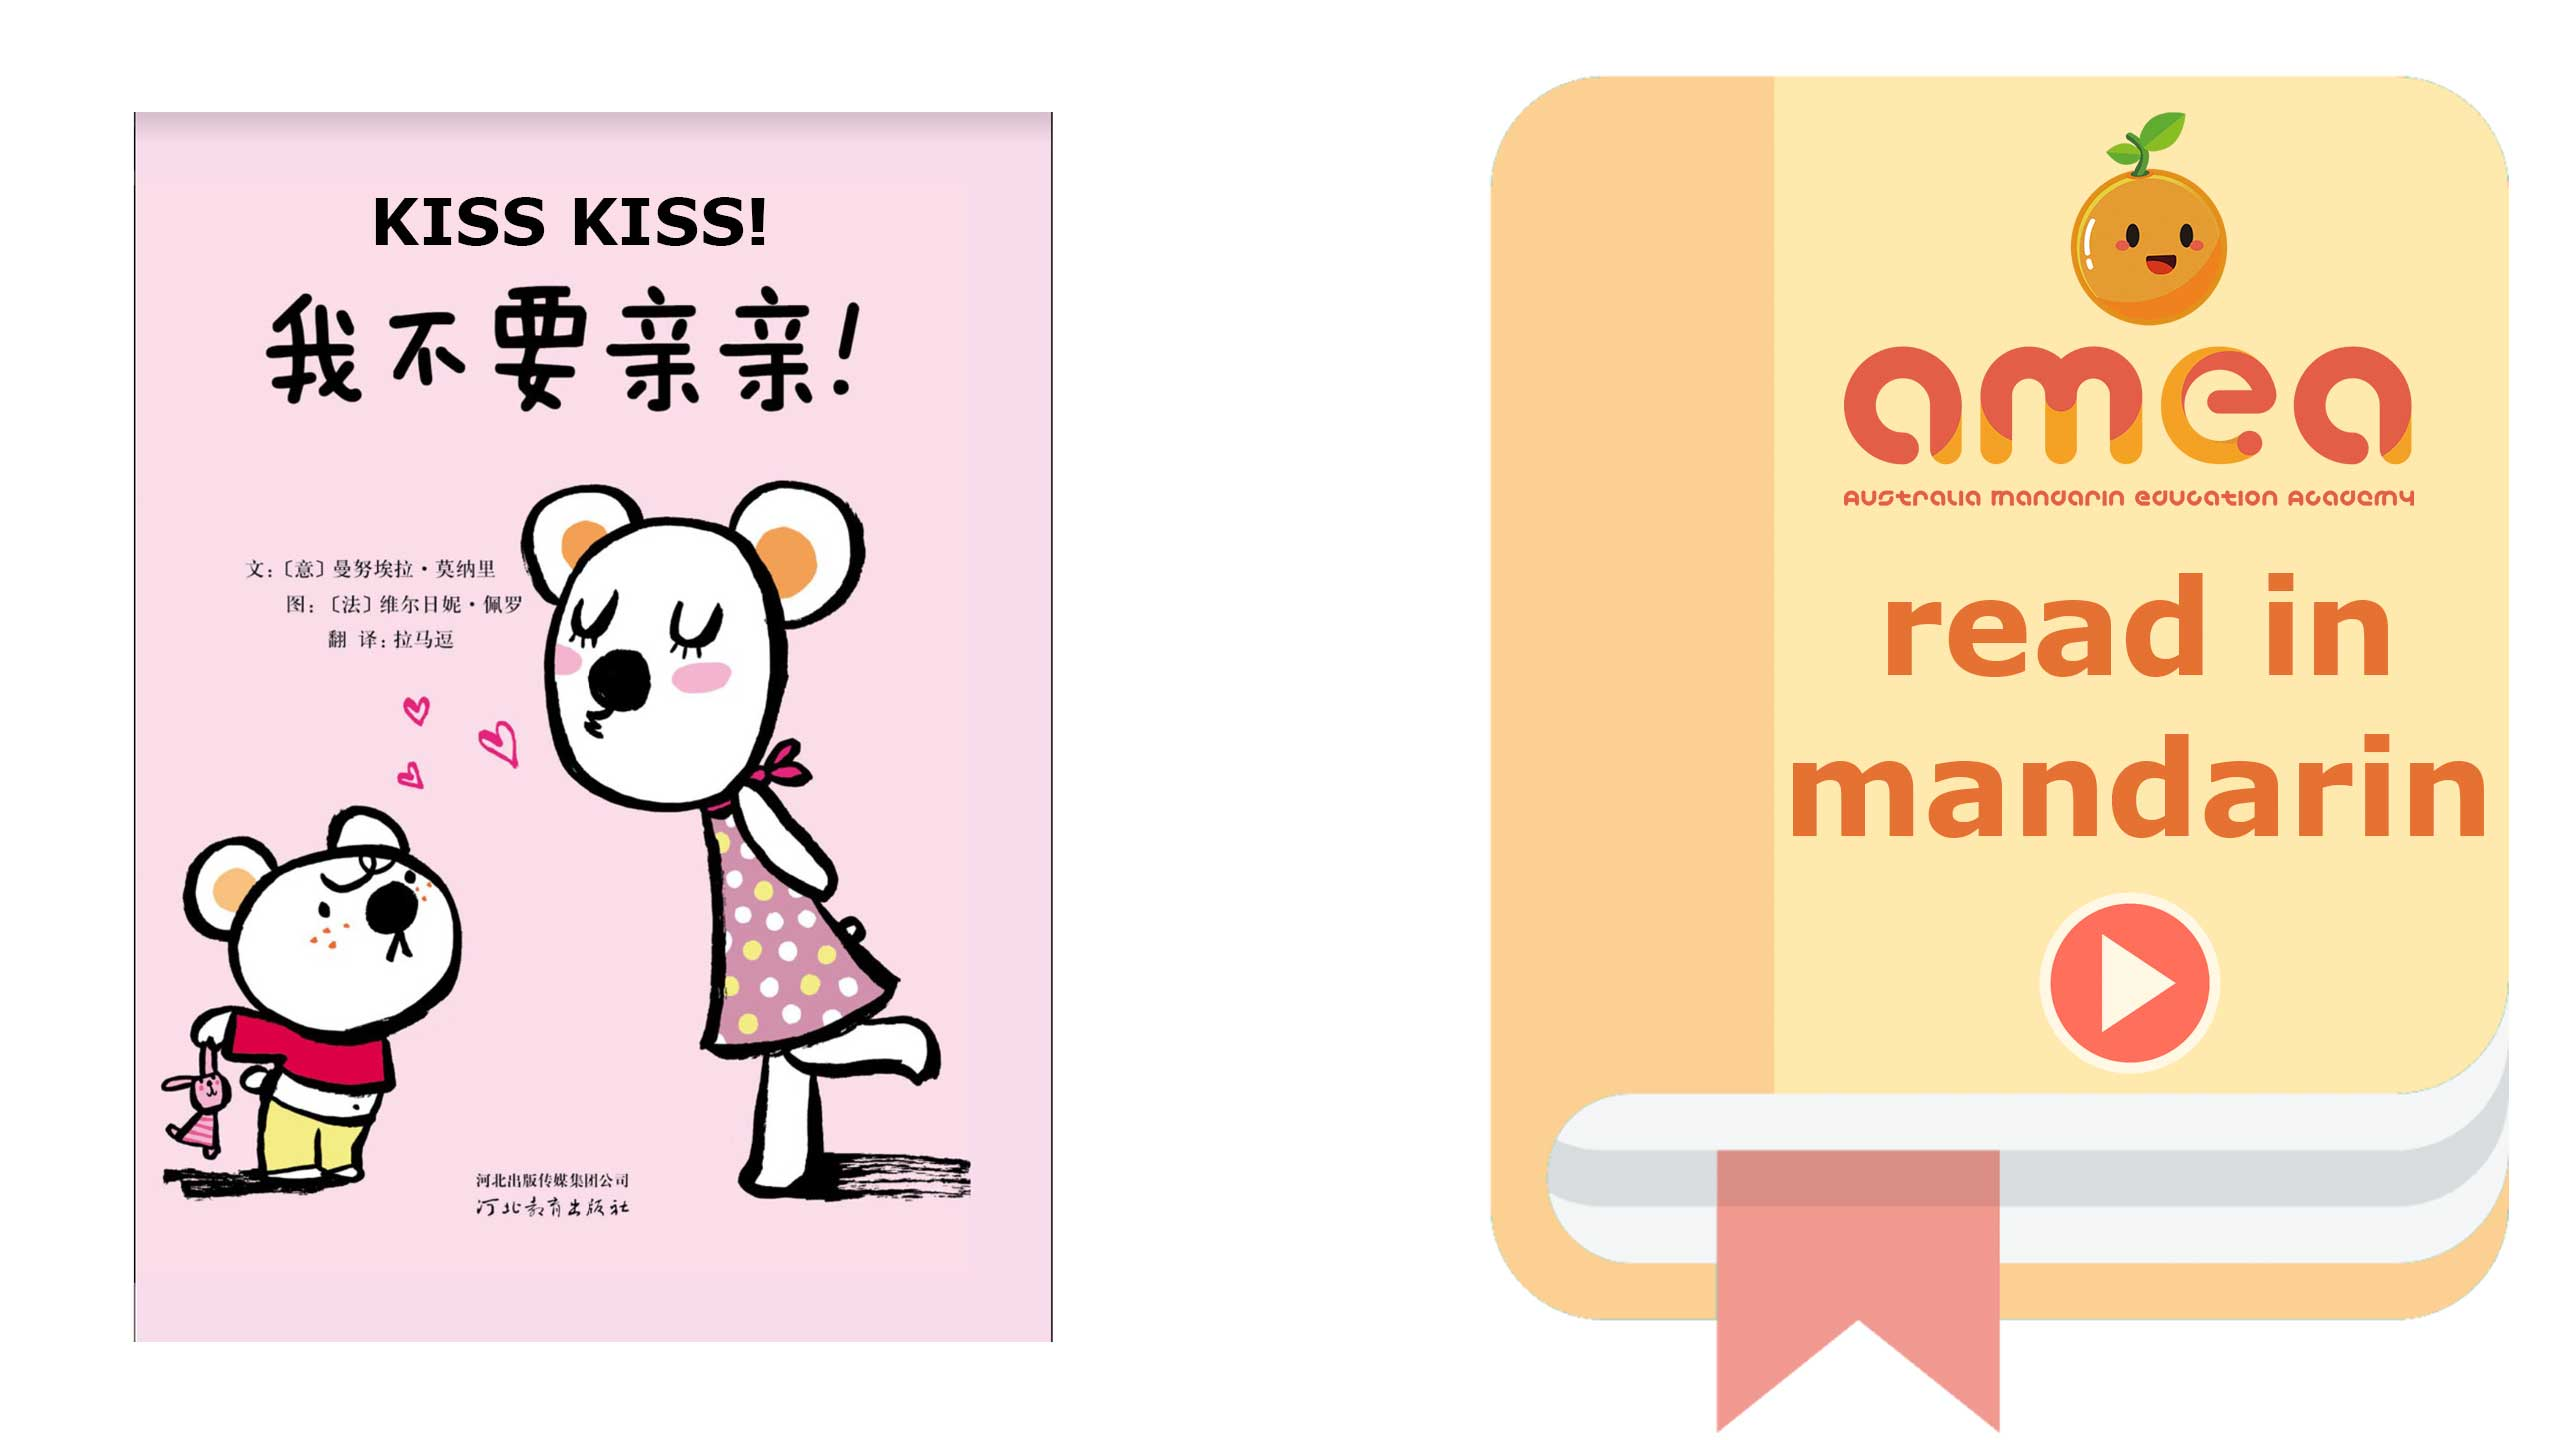 Kiss Kiss - read in Mandarin